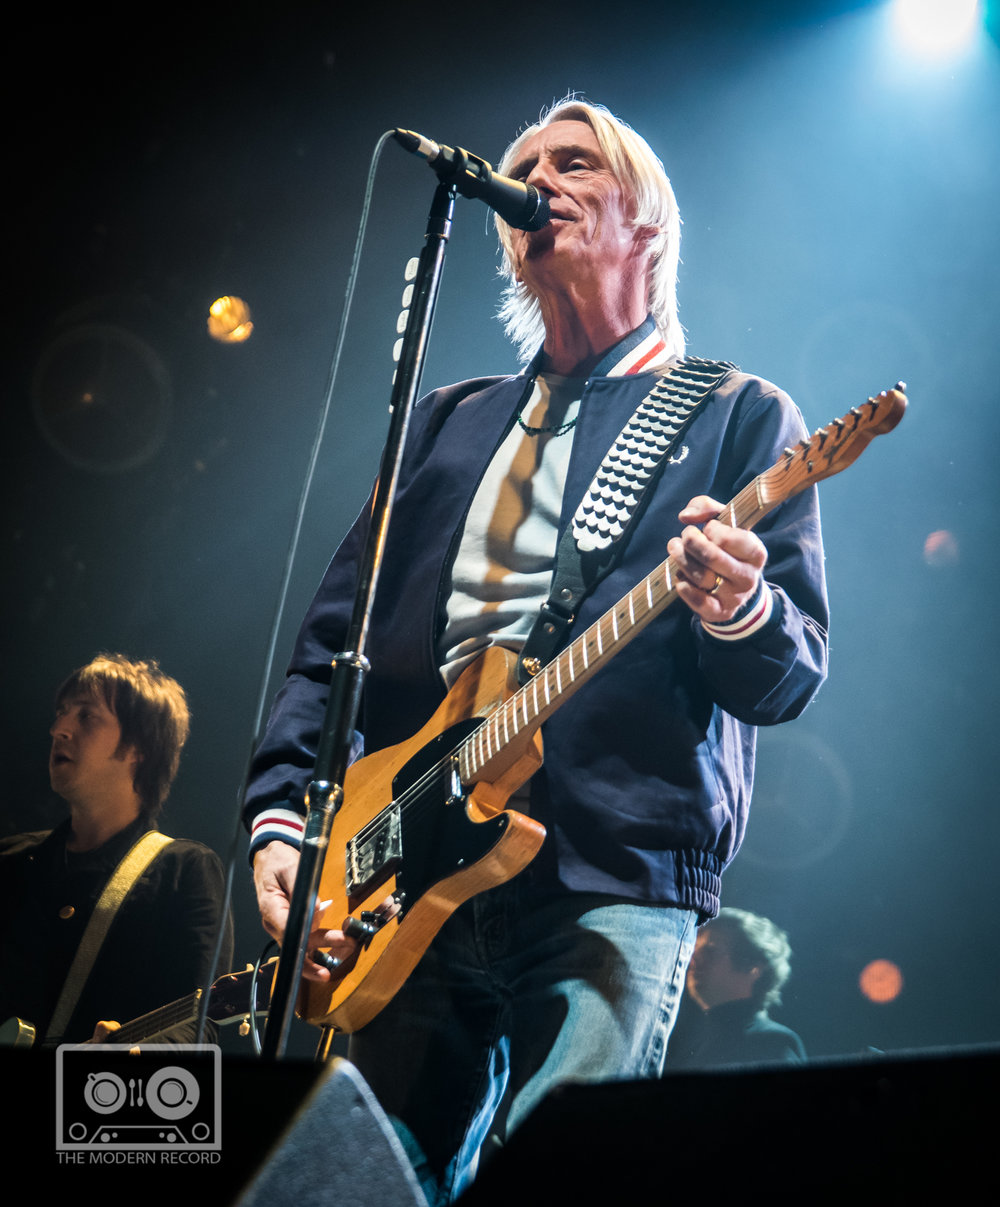 PAUL WELLER PERFORMING AT GLASGOW'S SSE HYDRO, GLASGOW - 25.02.2018  PICTURE BY: STEPHEN WILSON PHOTOGRAPHY